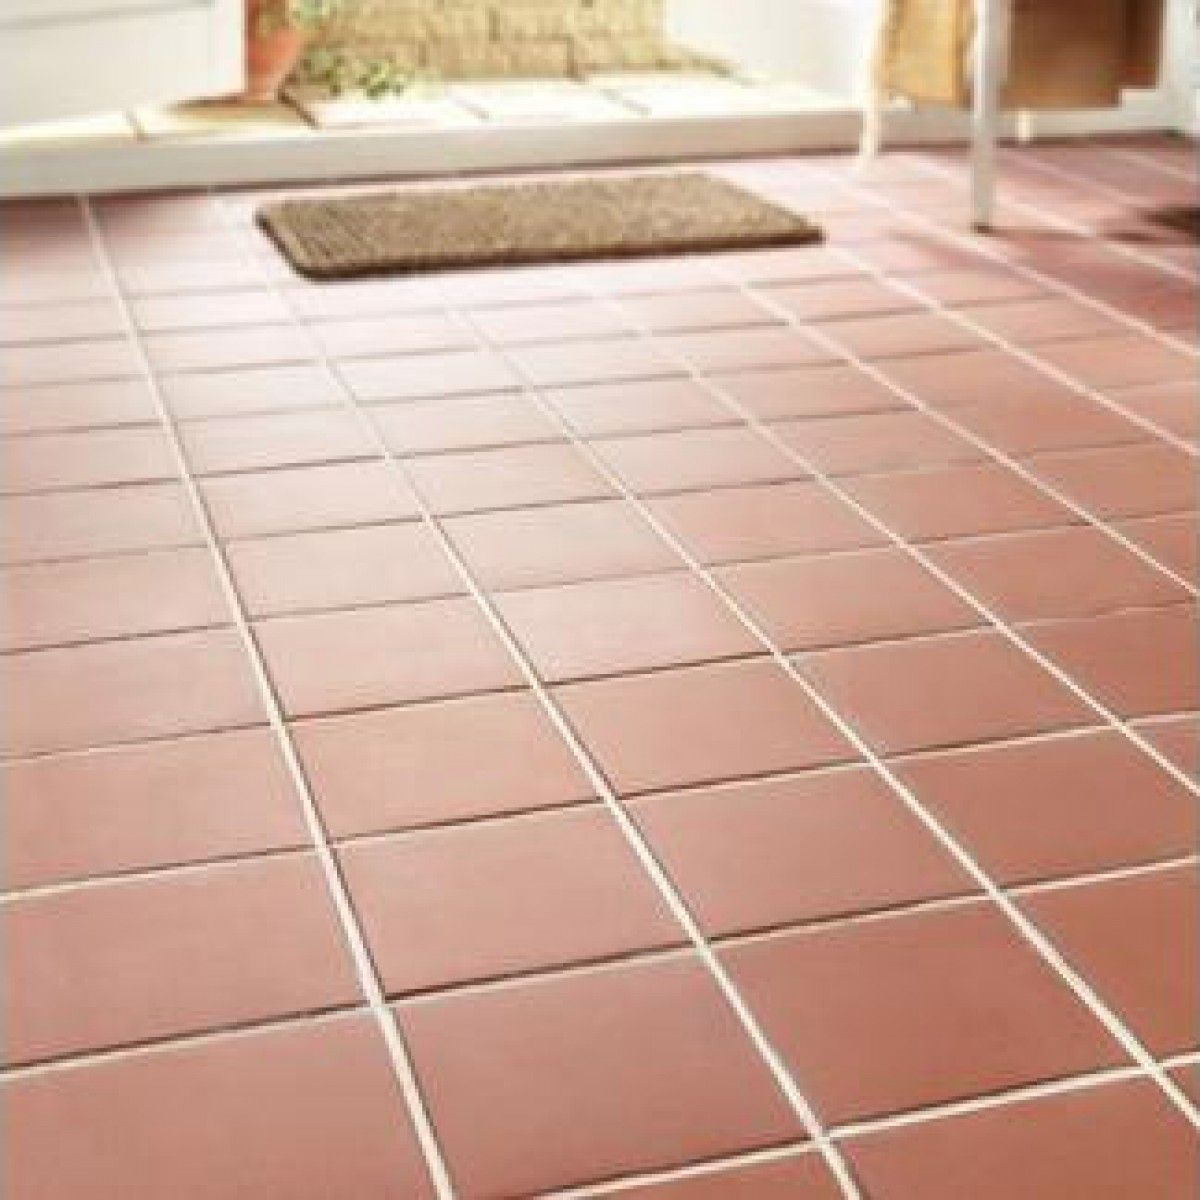 Similar Spatial (/emotive) Quality Of Tiled Floor